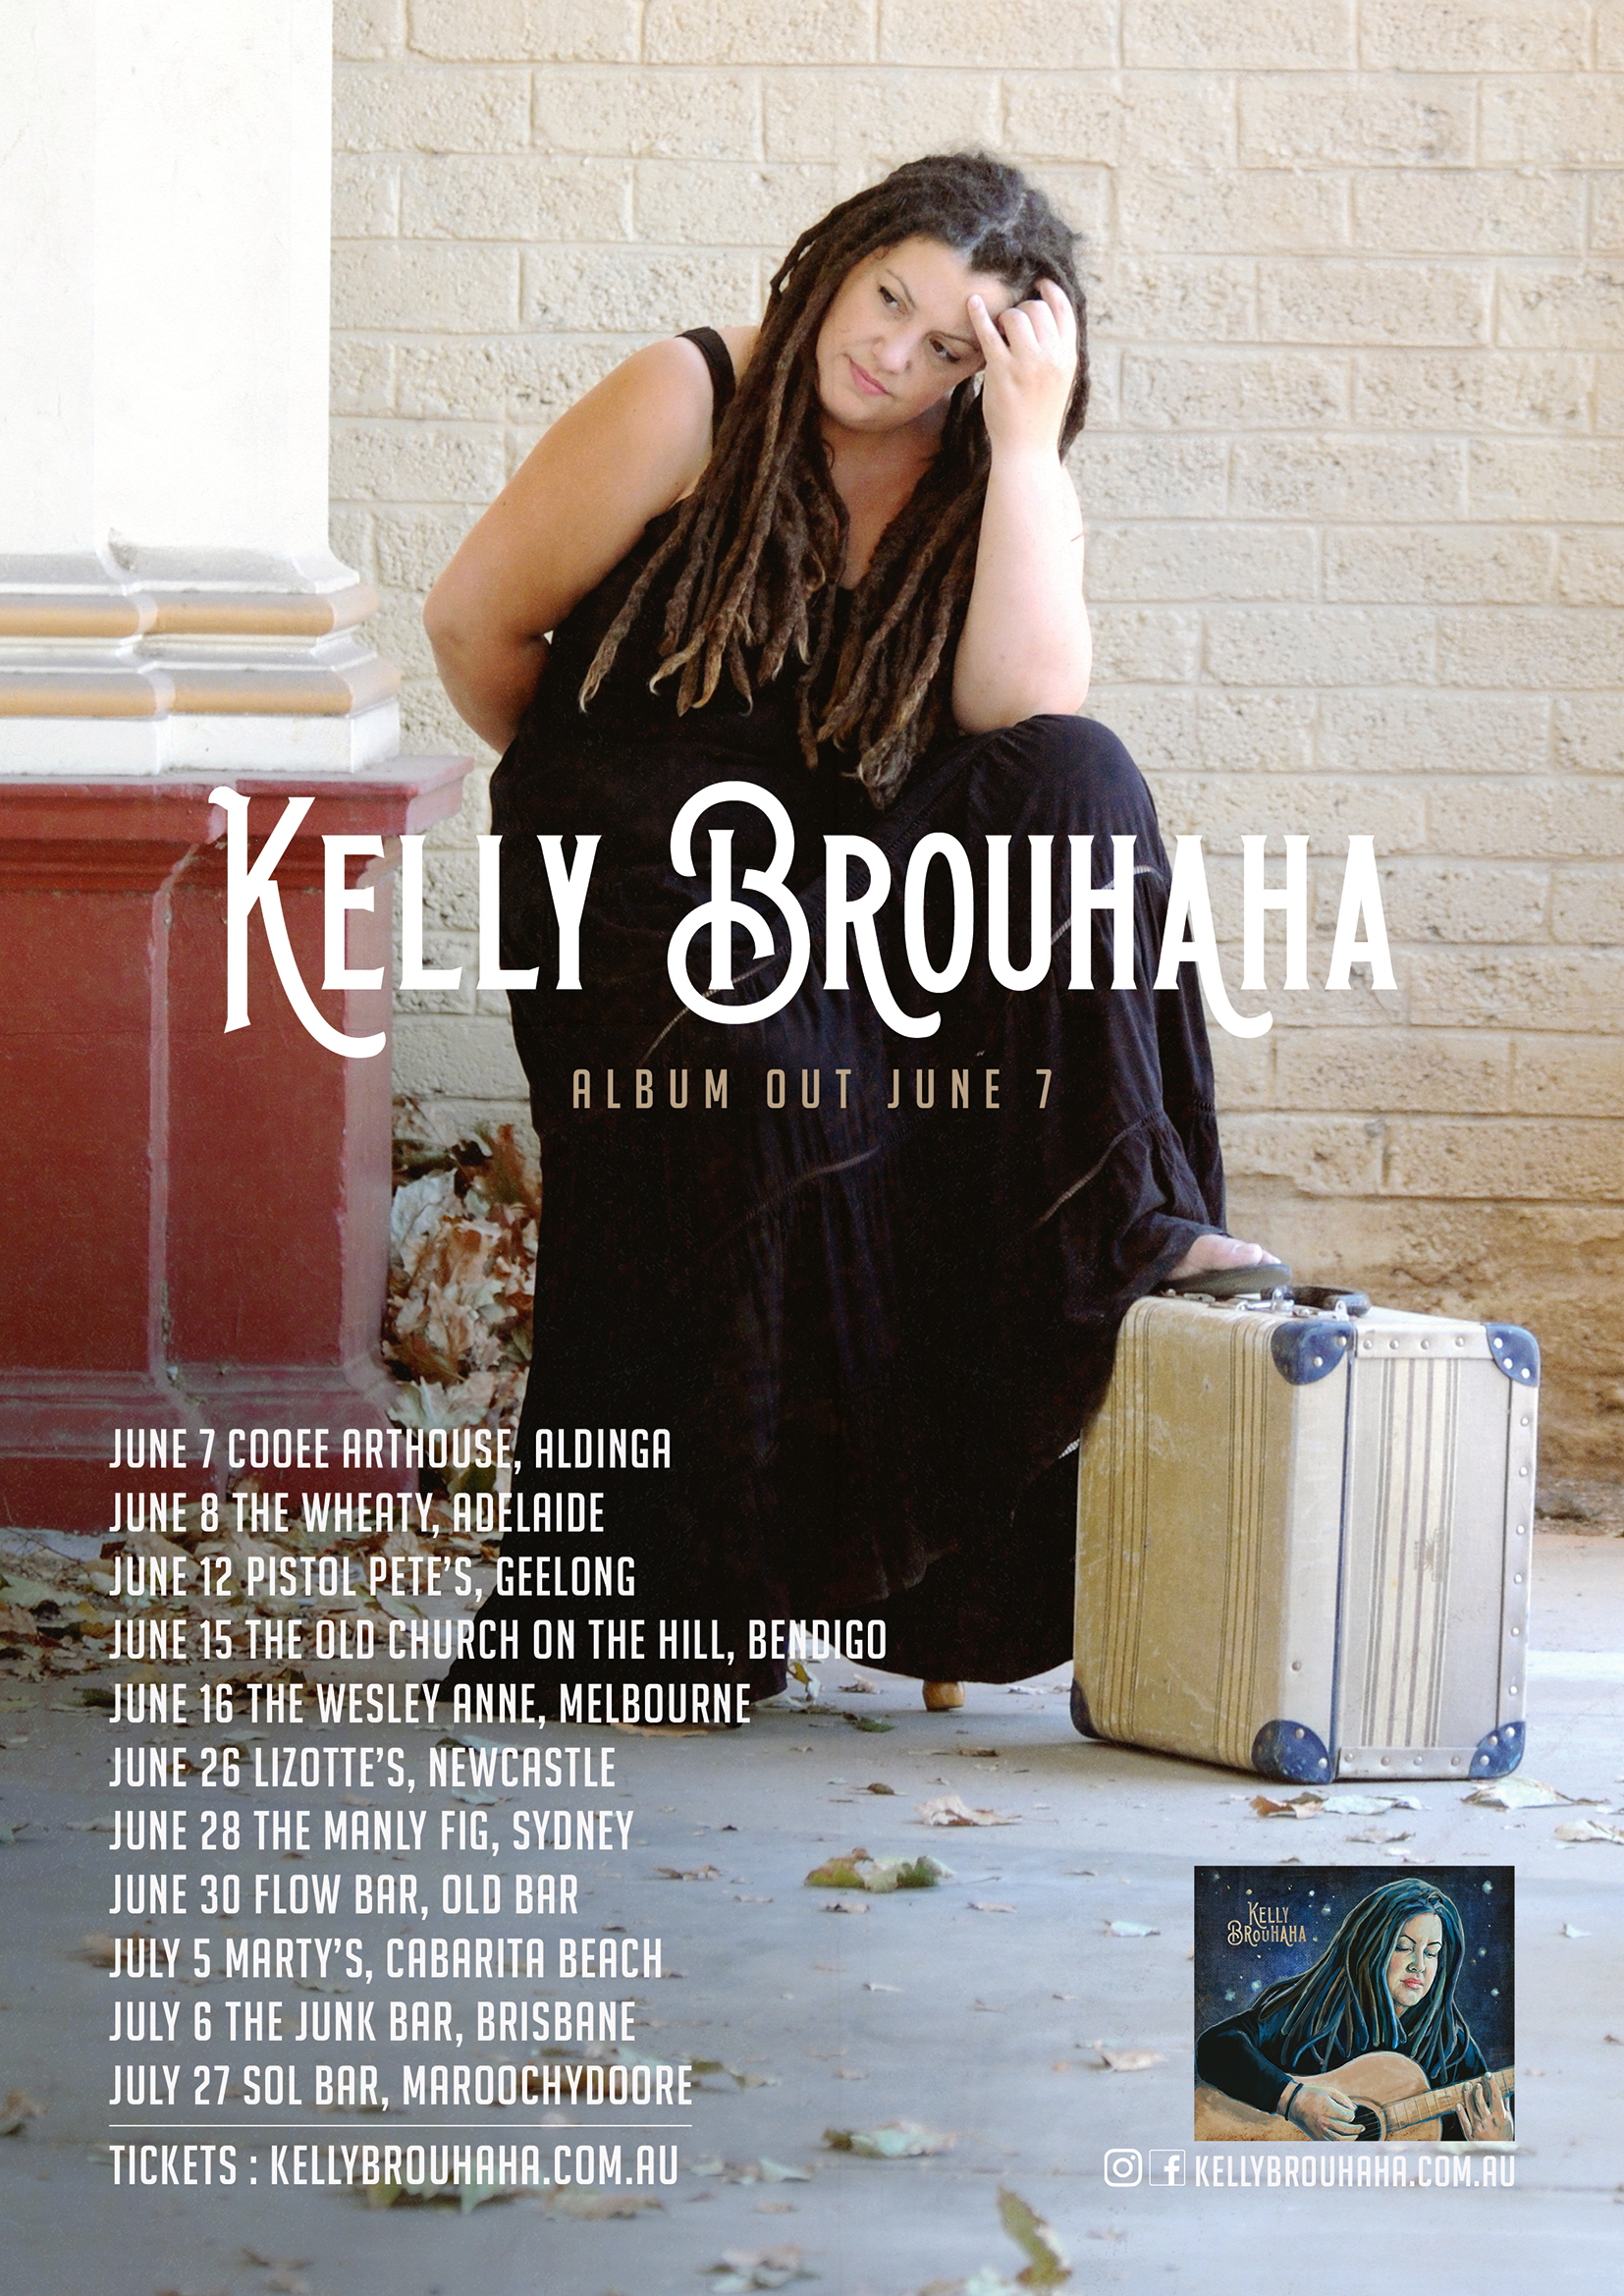 KELLY-BROUHAHA-POSTER-SANS-CANBERRA.jpg